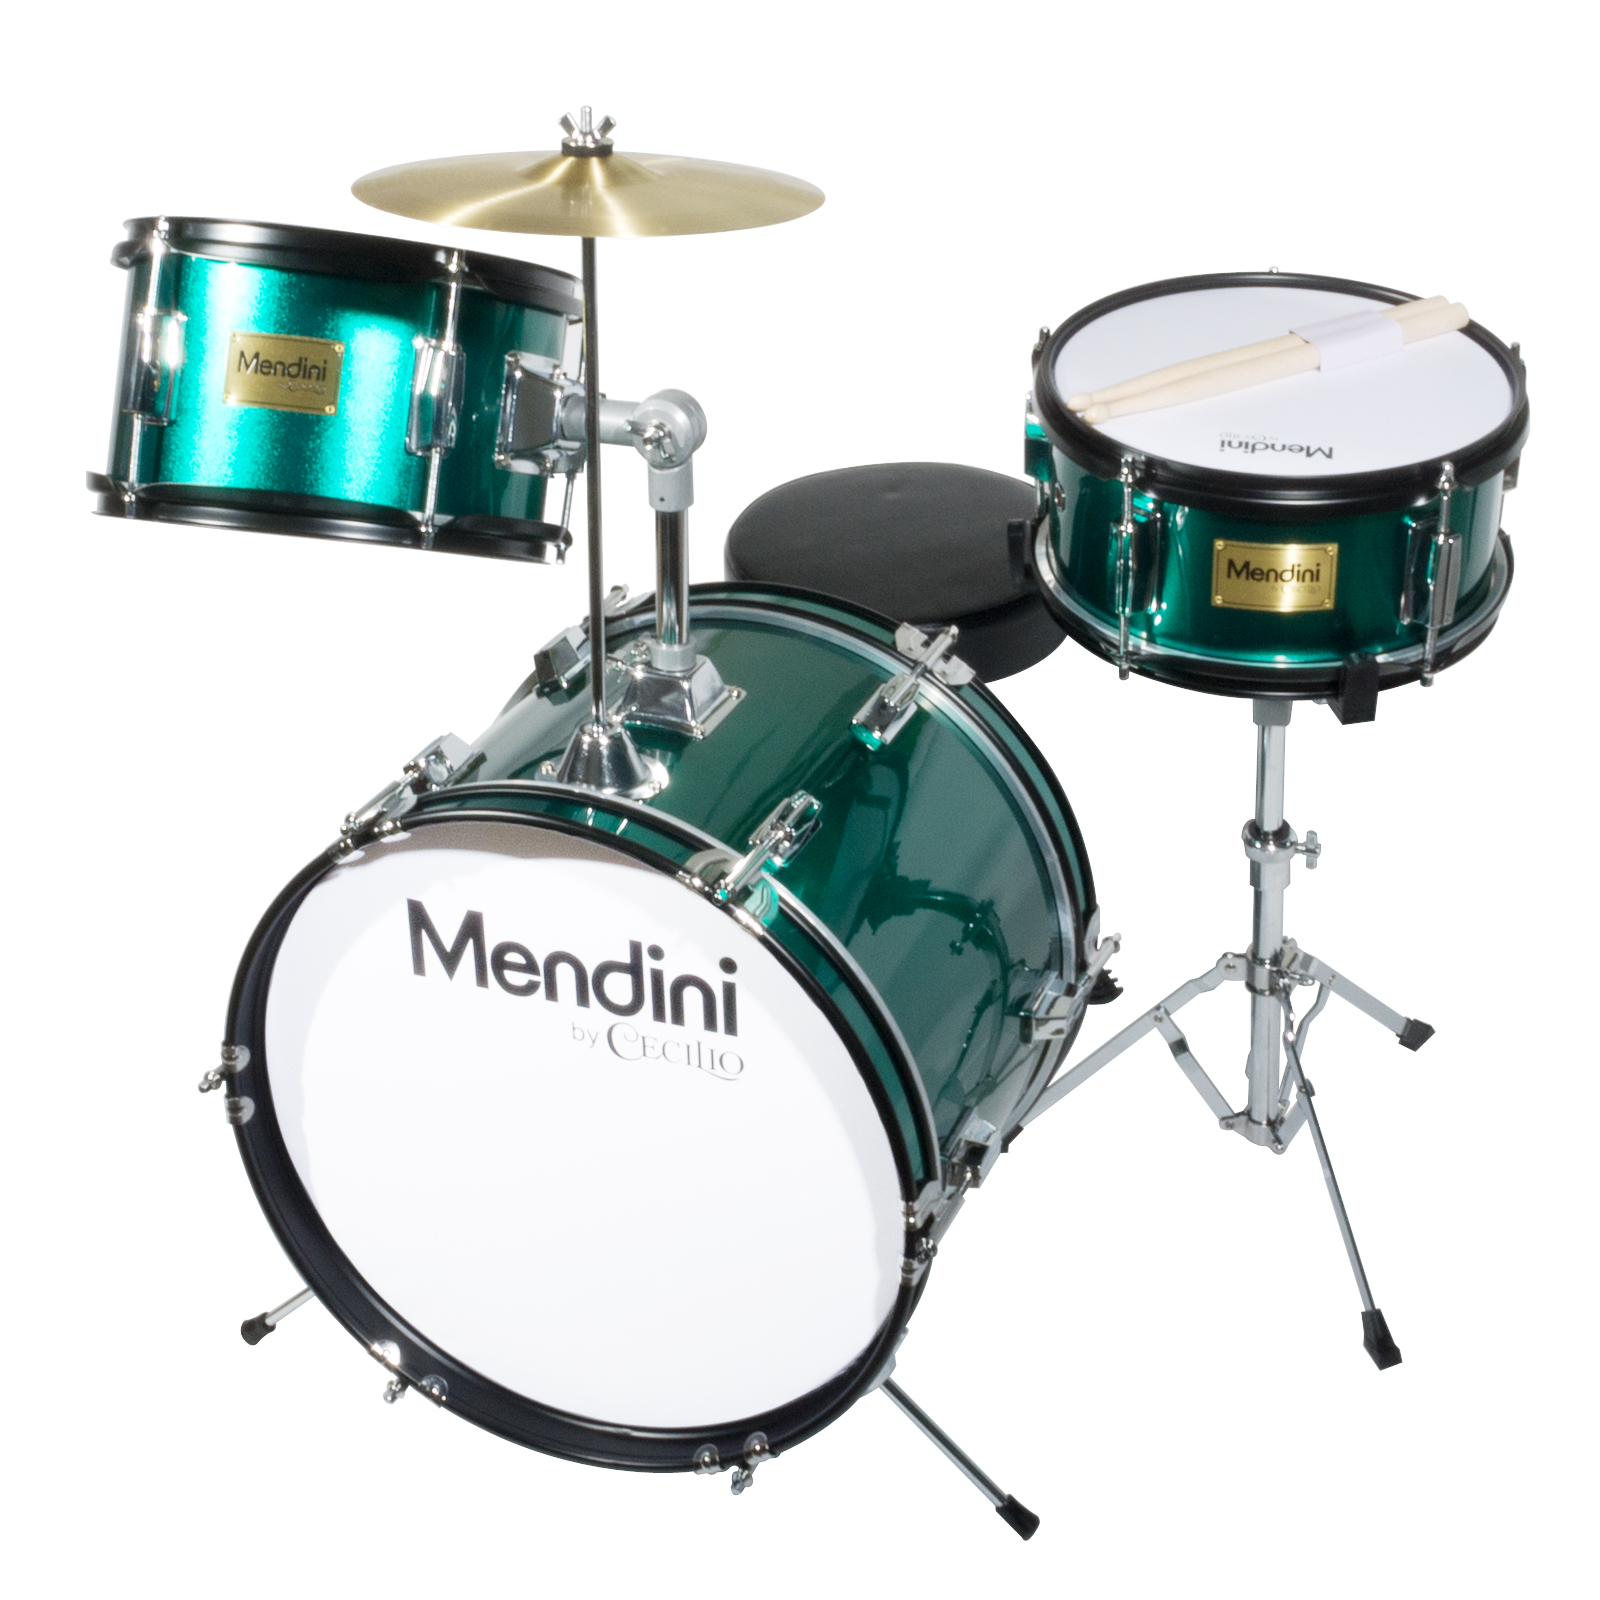 "Mendini by Cecilio 16"" 3-Piece Kids / Junior Drum Set with Adjustable Throne, Cymbal, Pedal & Drumsticks, Metallic Green, MJDS-3-GN"